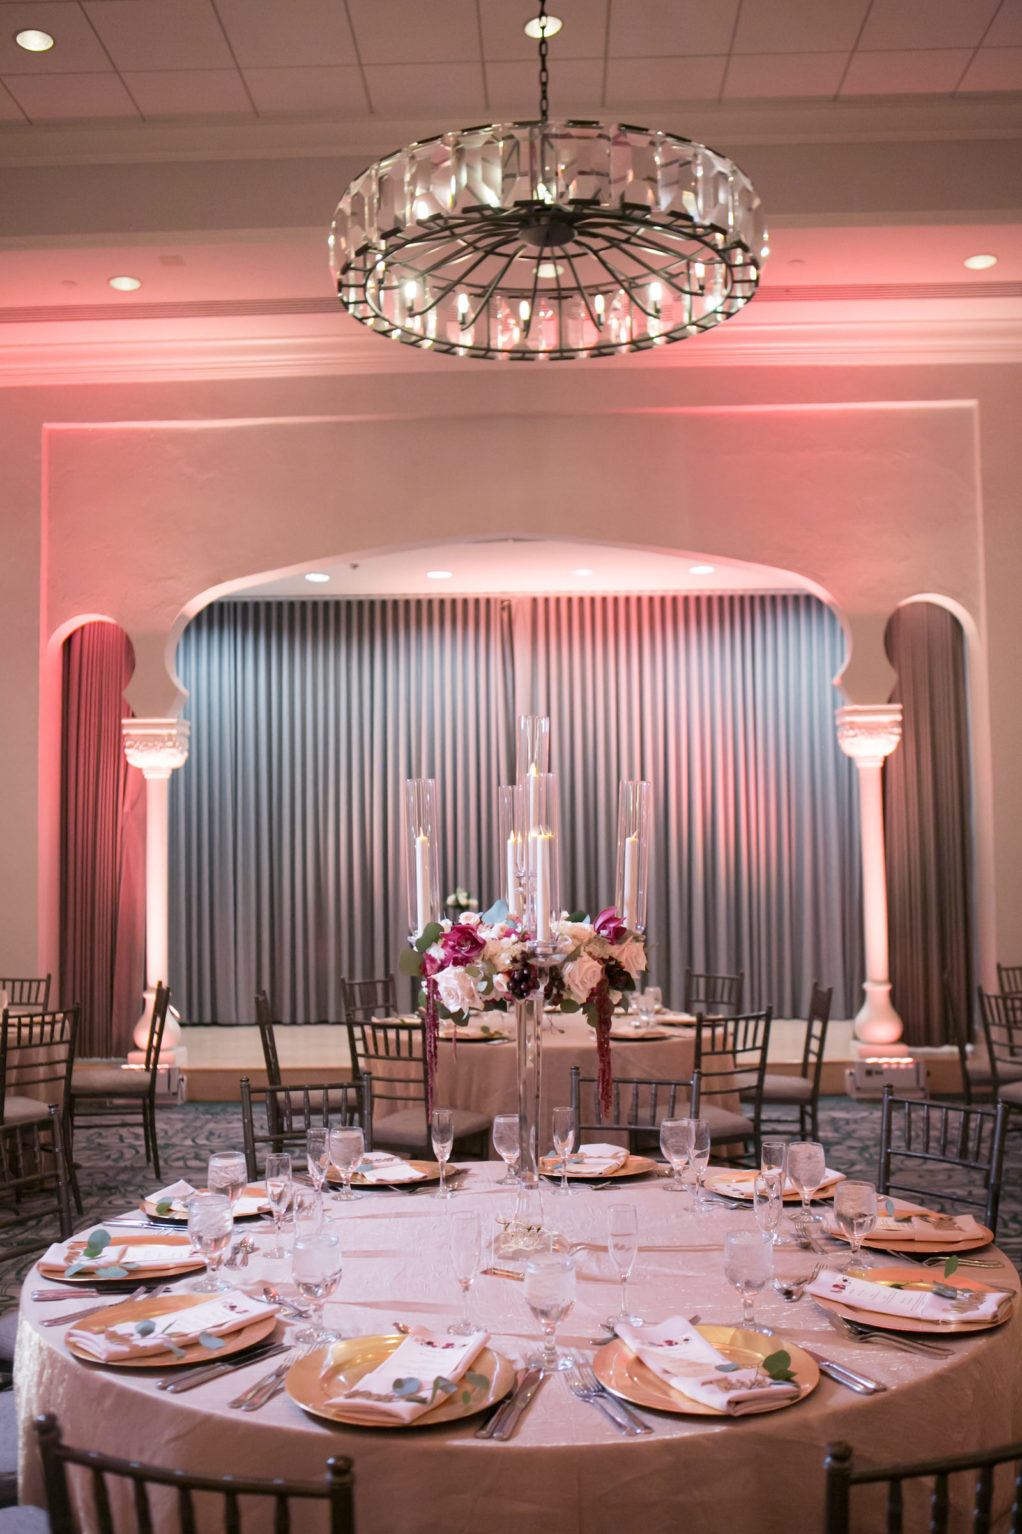 Elegant Ballroom Wedding Reception Decor, Gold Chargers, Pink Uplighting, Tall Glass Candle Centerpieces | Tampa Bay Wedding Photographer Carrie Wildes Photography | St. Pete Wedding Venue Vinoy Renaissance